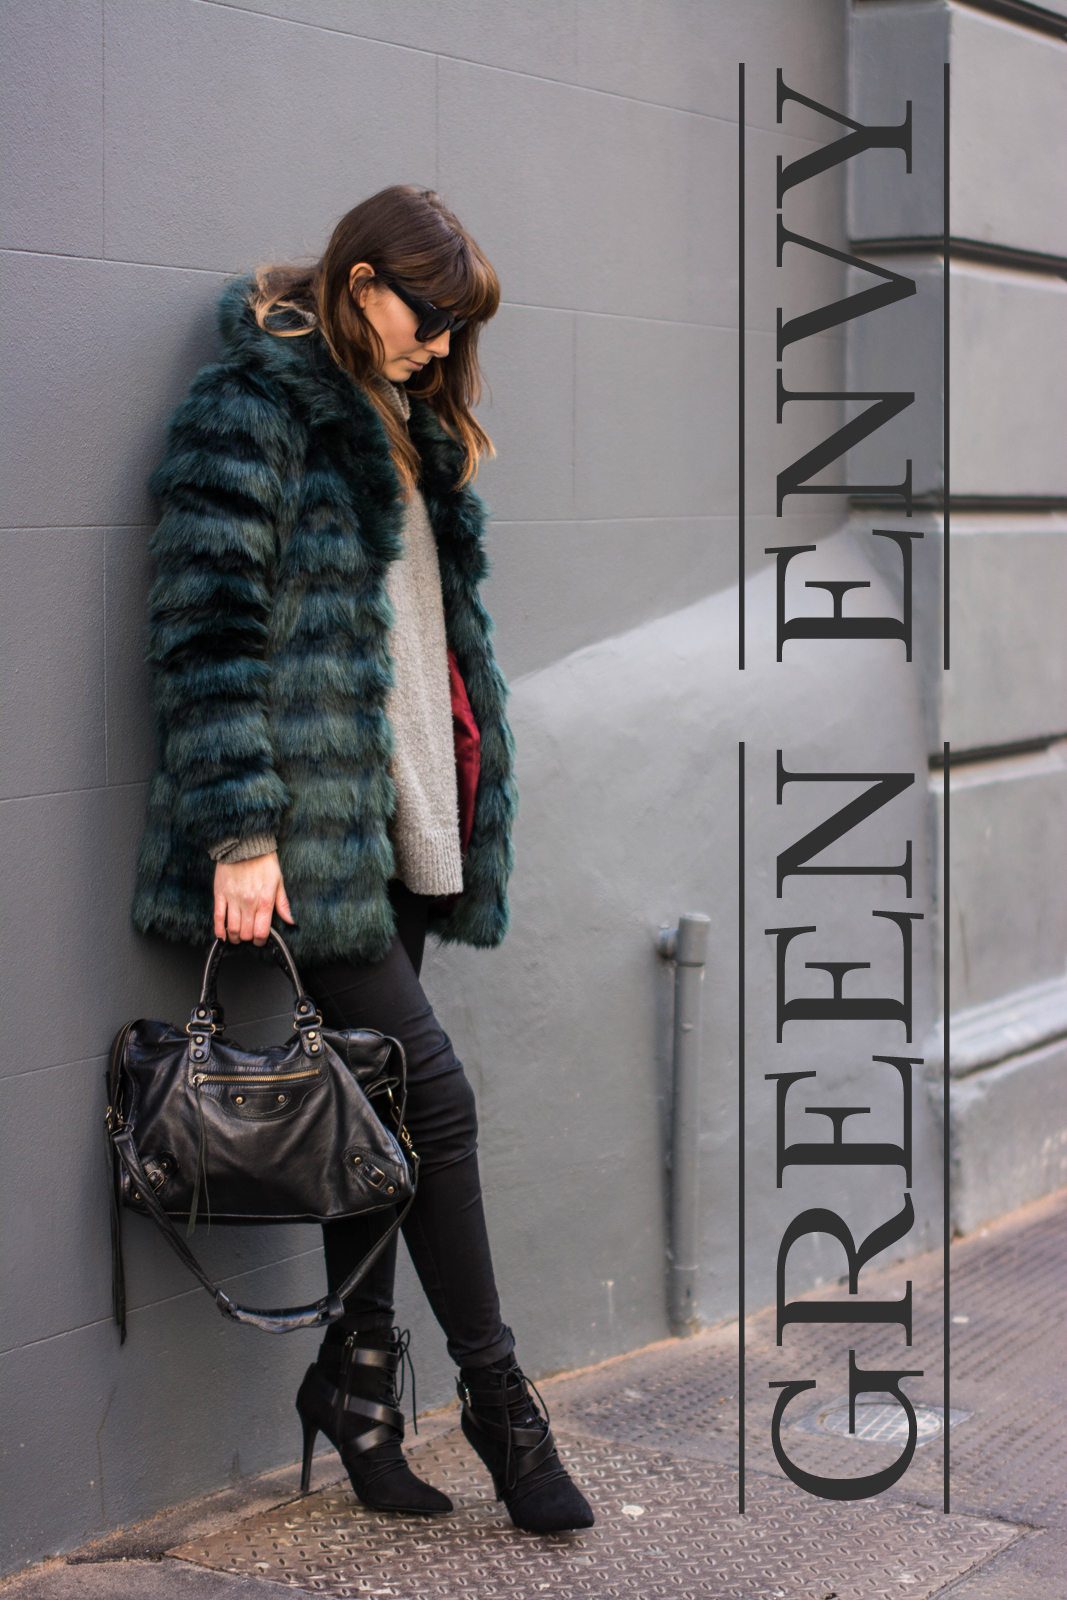 EJSTYLE - Fashion Union teal green faux fur coat, balenciaga classic city bag, Black skinny jeans, Zara lace up ankle boots SS15, winter outfit, influential fashion bloggers, london street style, Emma Hill